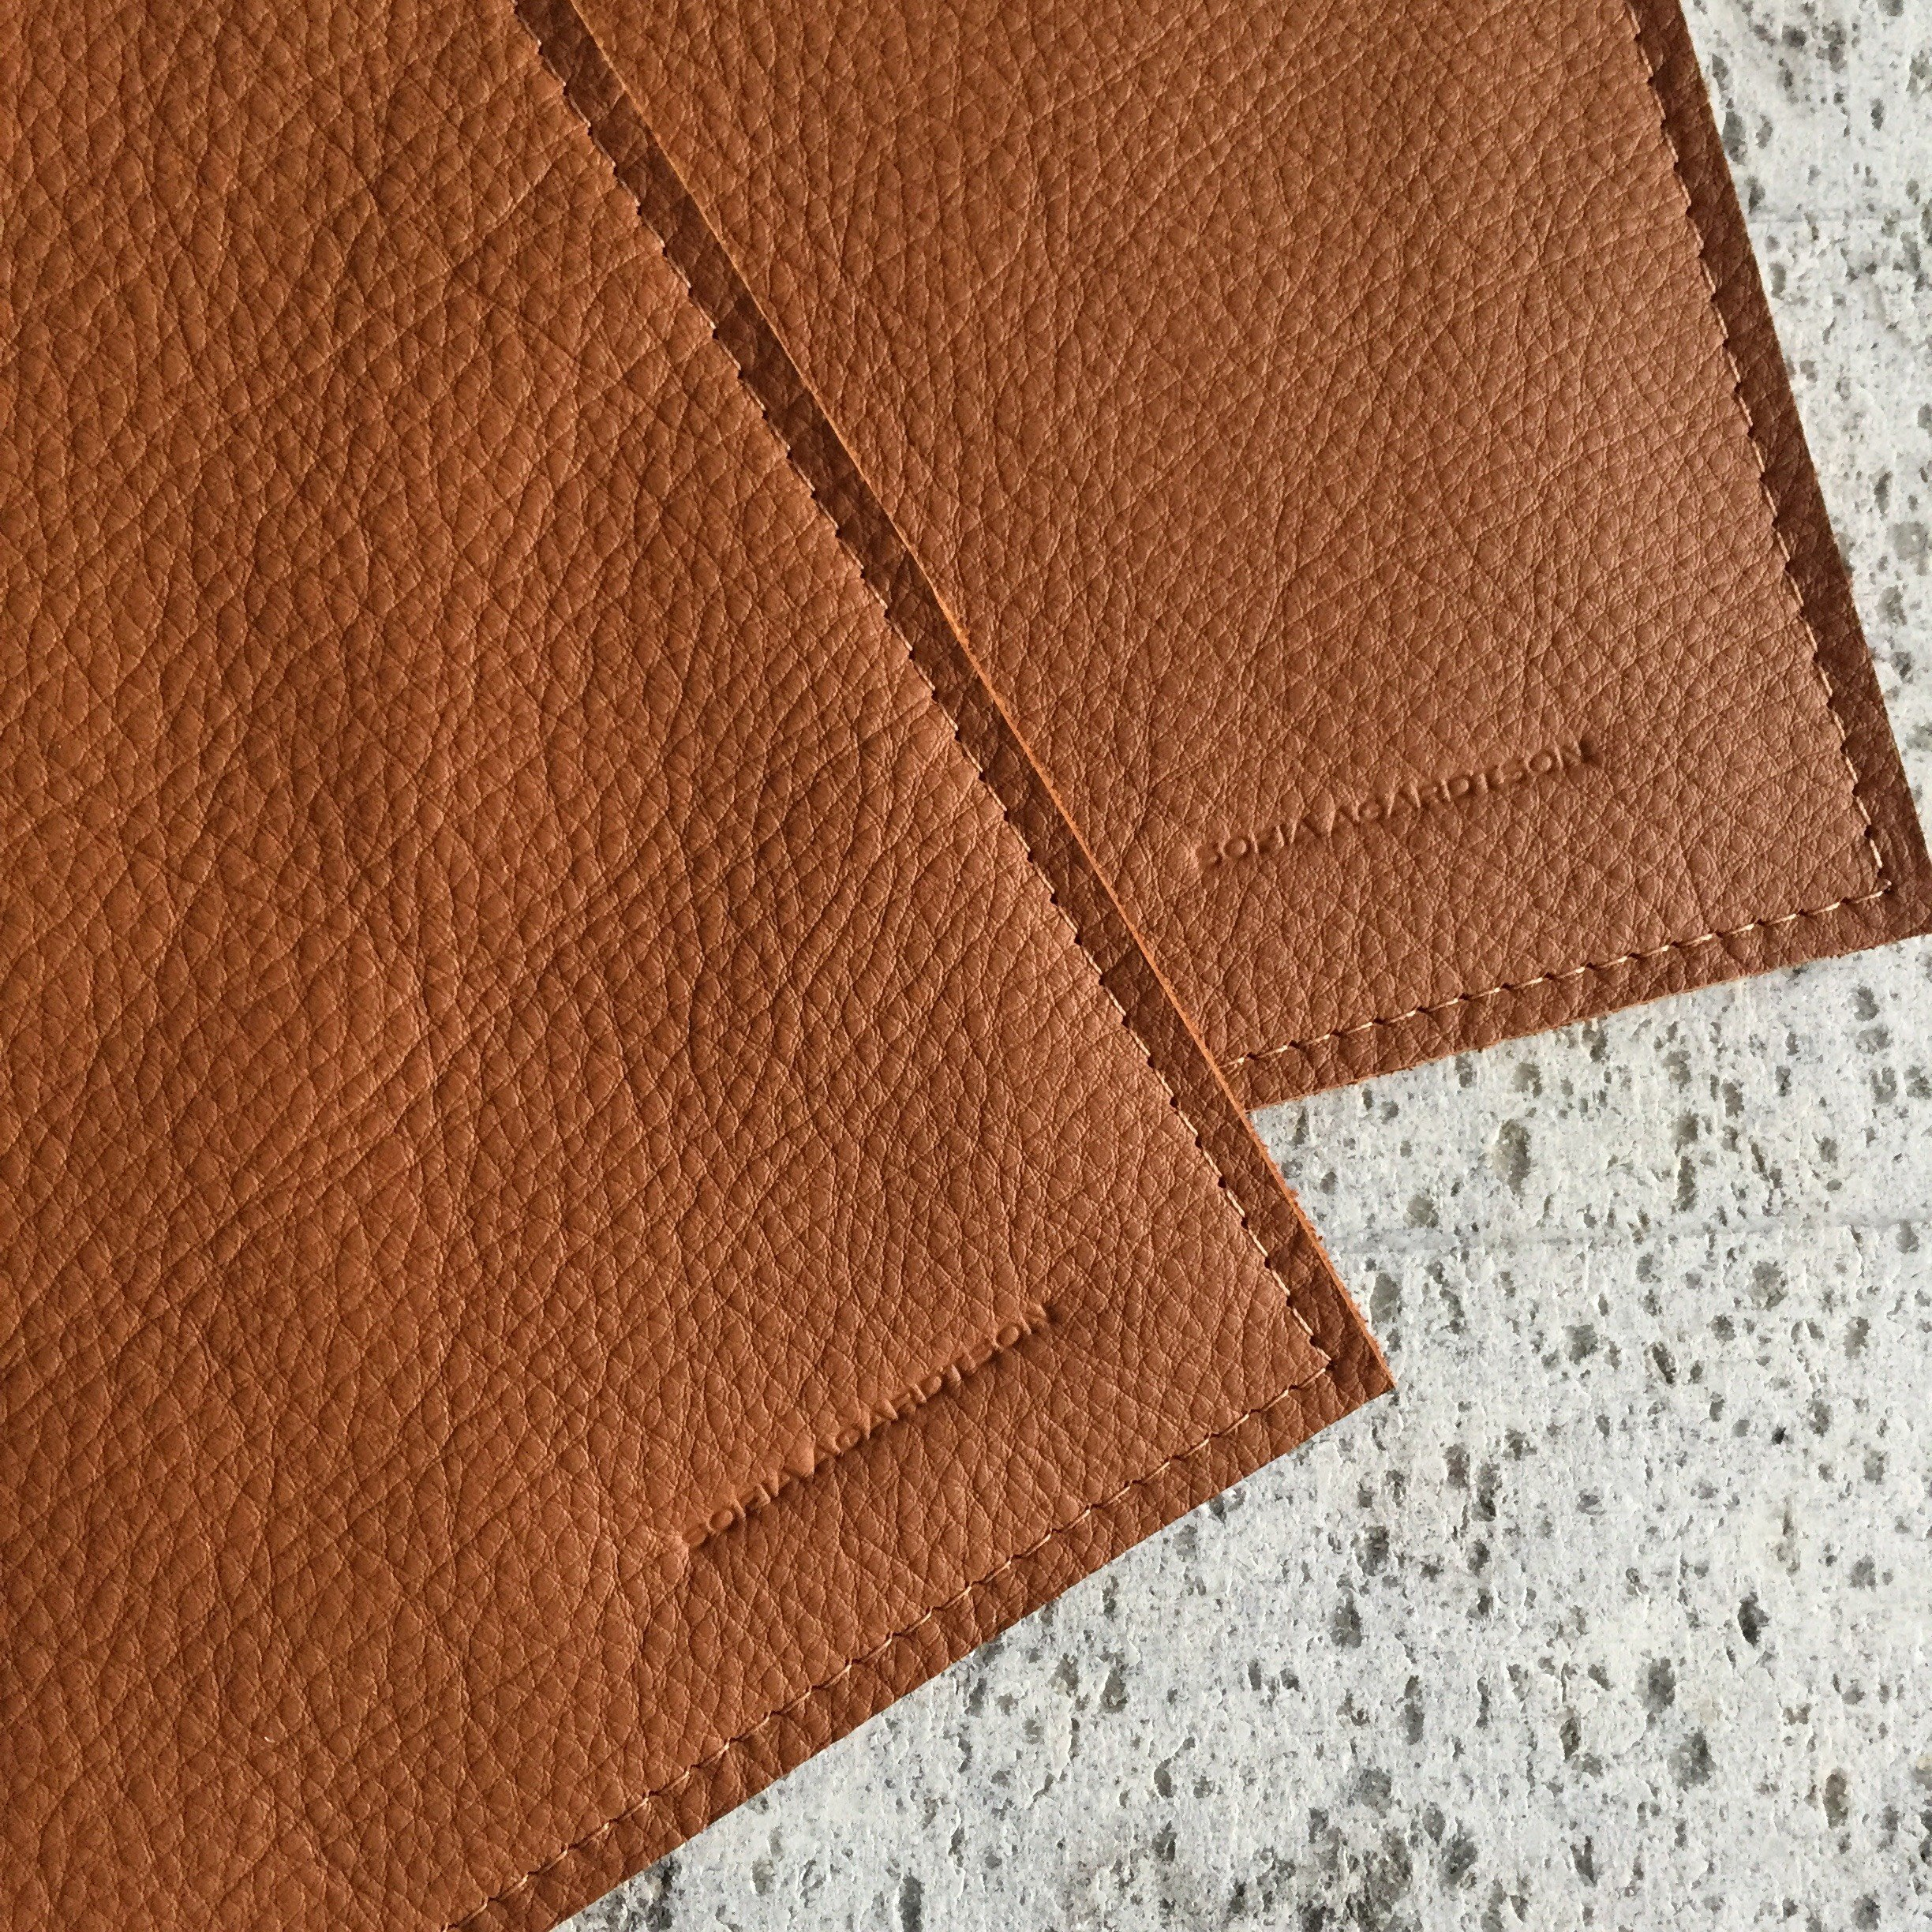 Hot Pads - Cognac Leather (set of 2)